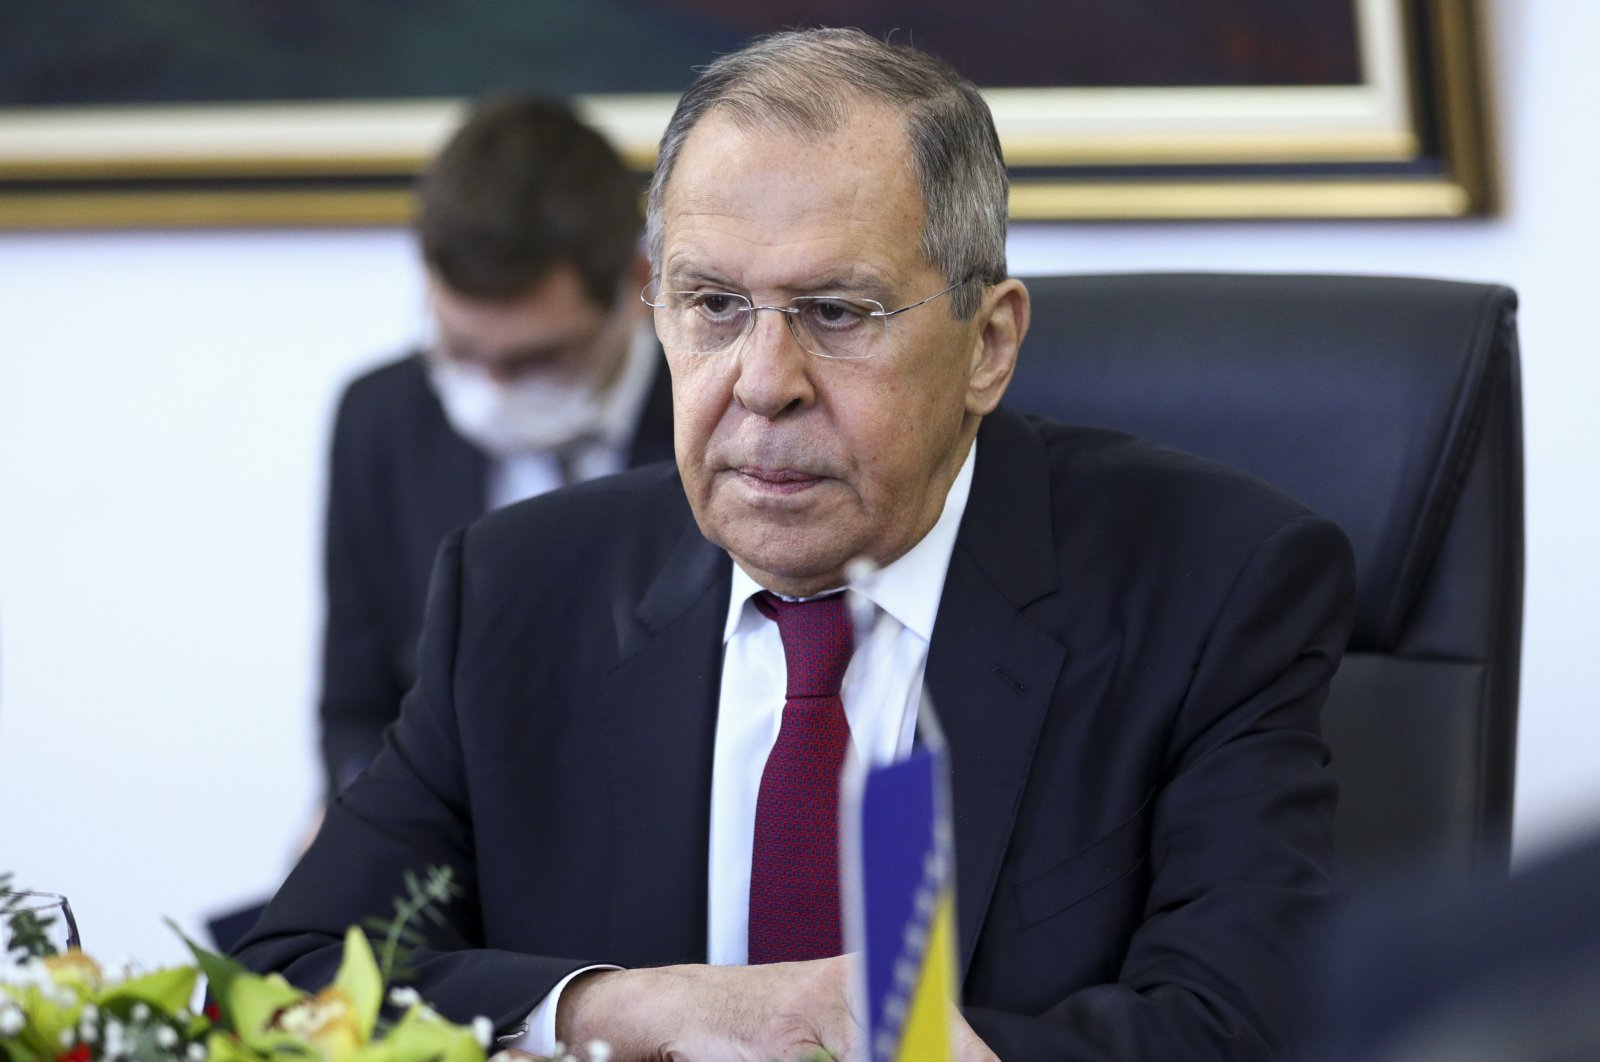 Russian Foreign Minister Sergey Lavrov attends a meeting with Bosnia's Foreign Minister Bisera Turkovic in the capital Sarajevo, Bosnia, Tuesday, Dec. 15, 2020. (AP Photo)